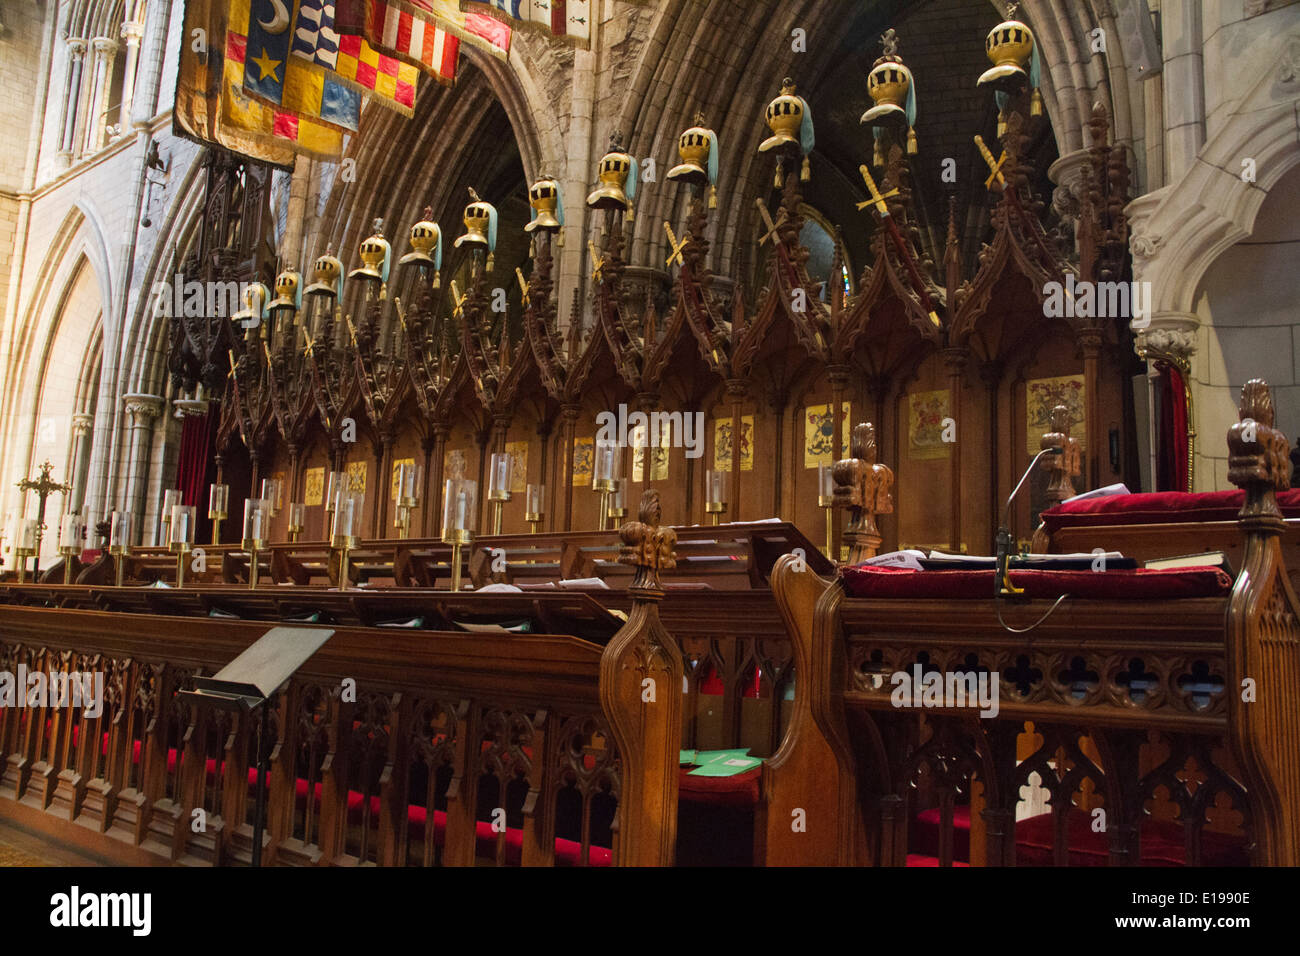 Choir stalls with the banners and hatchments of the Knights of Saint Patrick Saint Patrick's Cathedral Dublin,Ireland - Stock Image